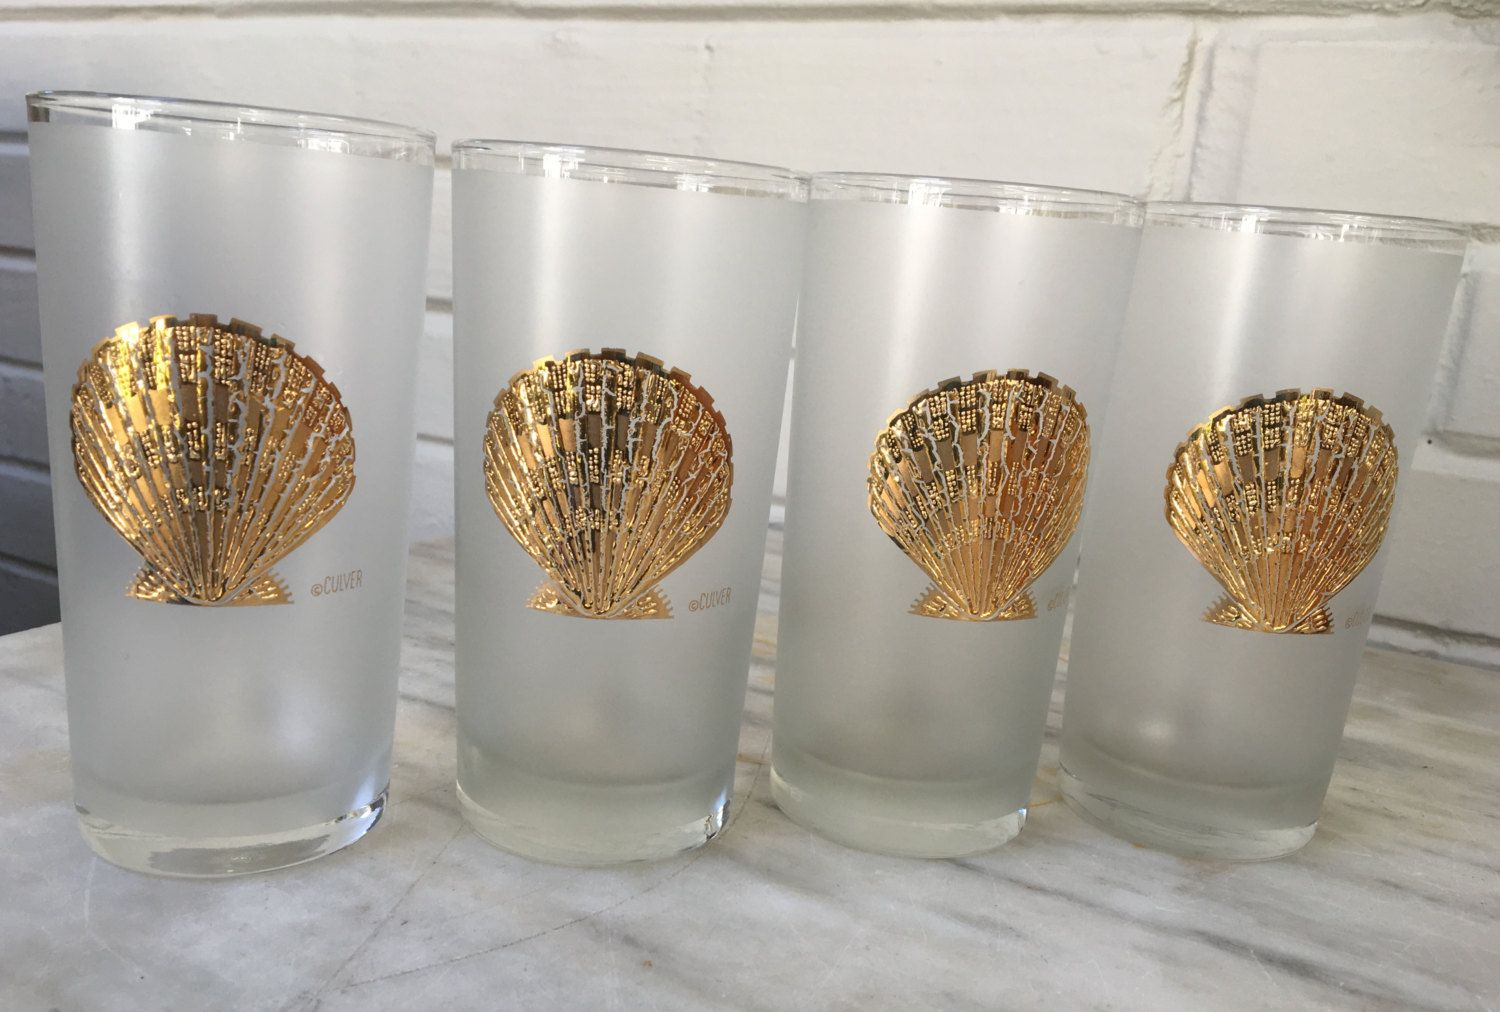 1960s Vintage Culver Frosted Gold Shell Glasses Glass Etsy Carat Gold Gold Tom Collins Glasses